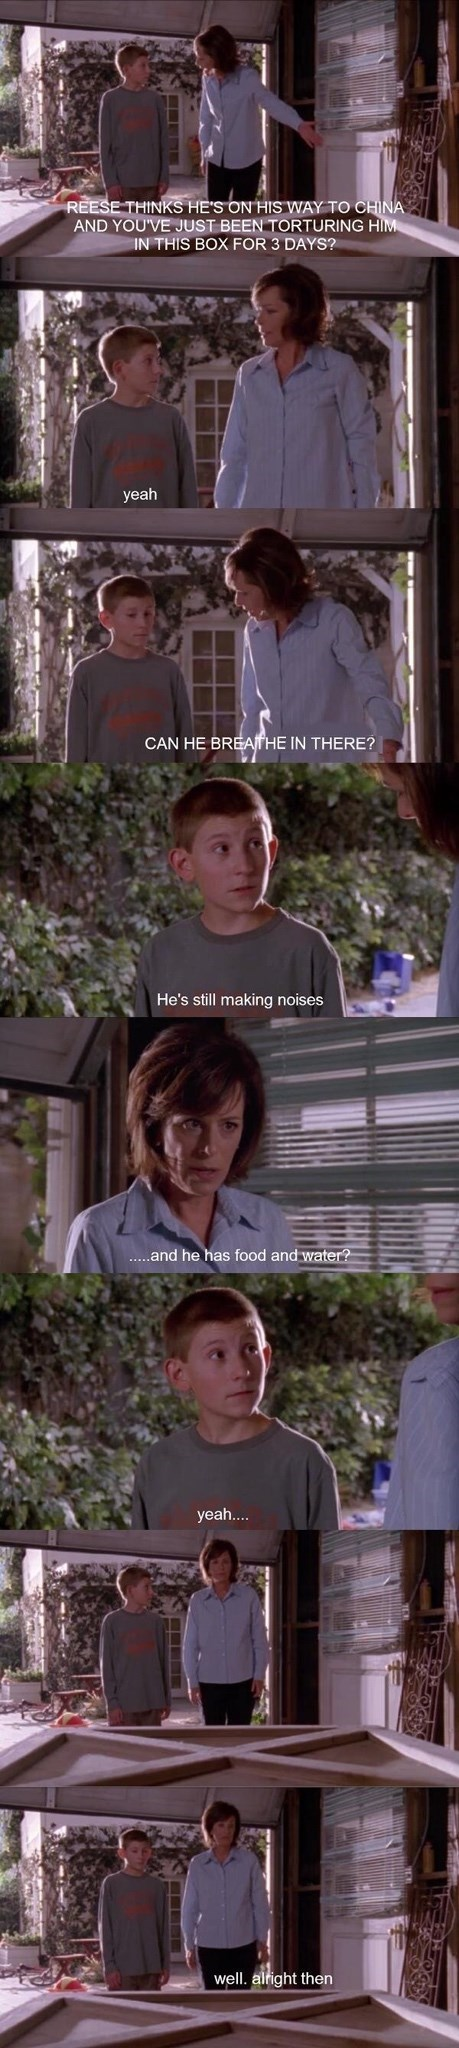 Malcolm In the Middle scene about keeping Reese in a box